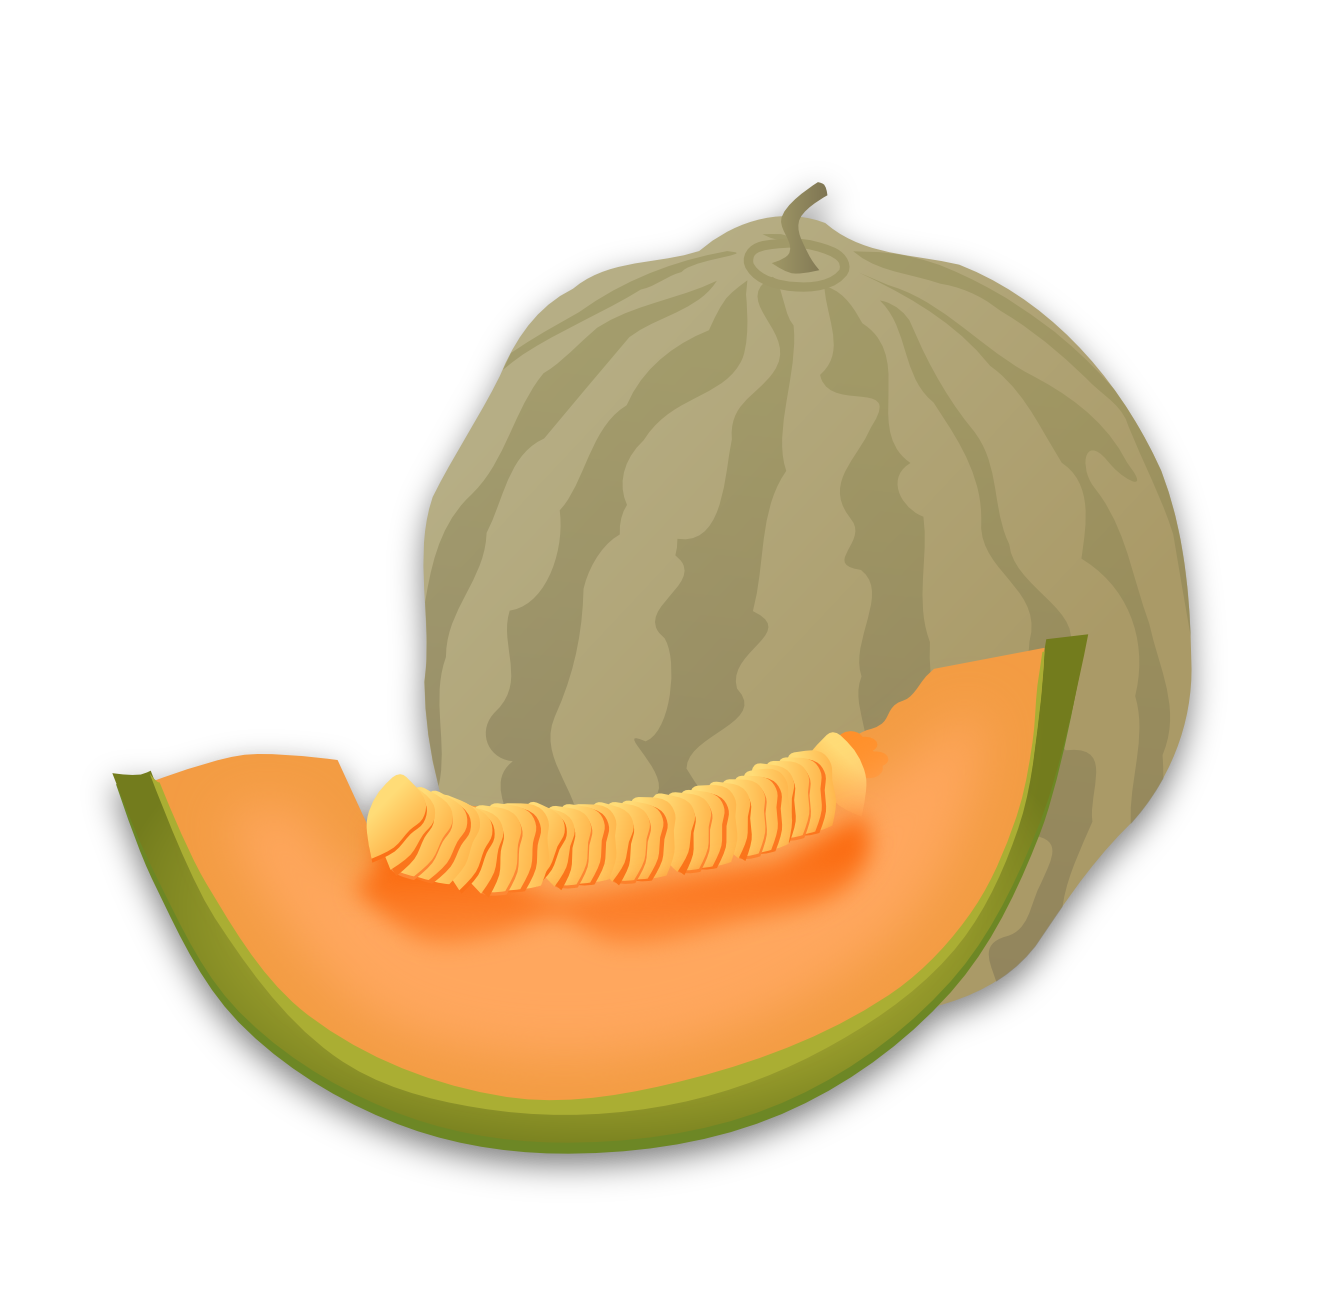 Melon clipart #7, Download drawings